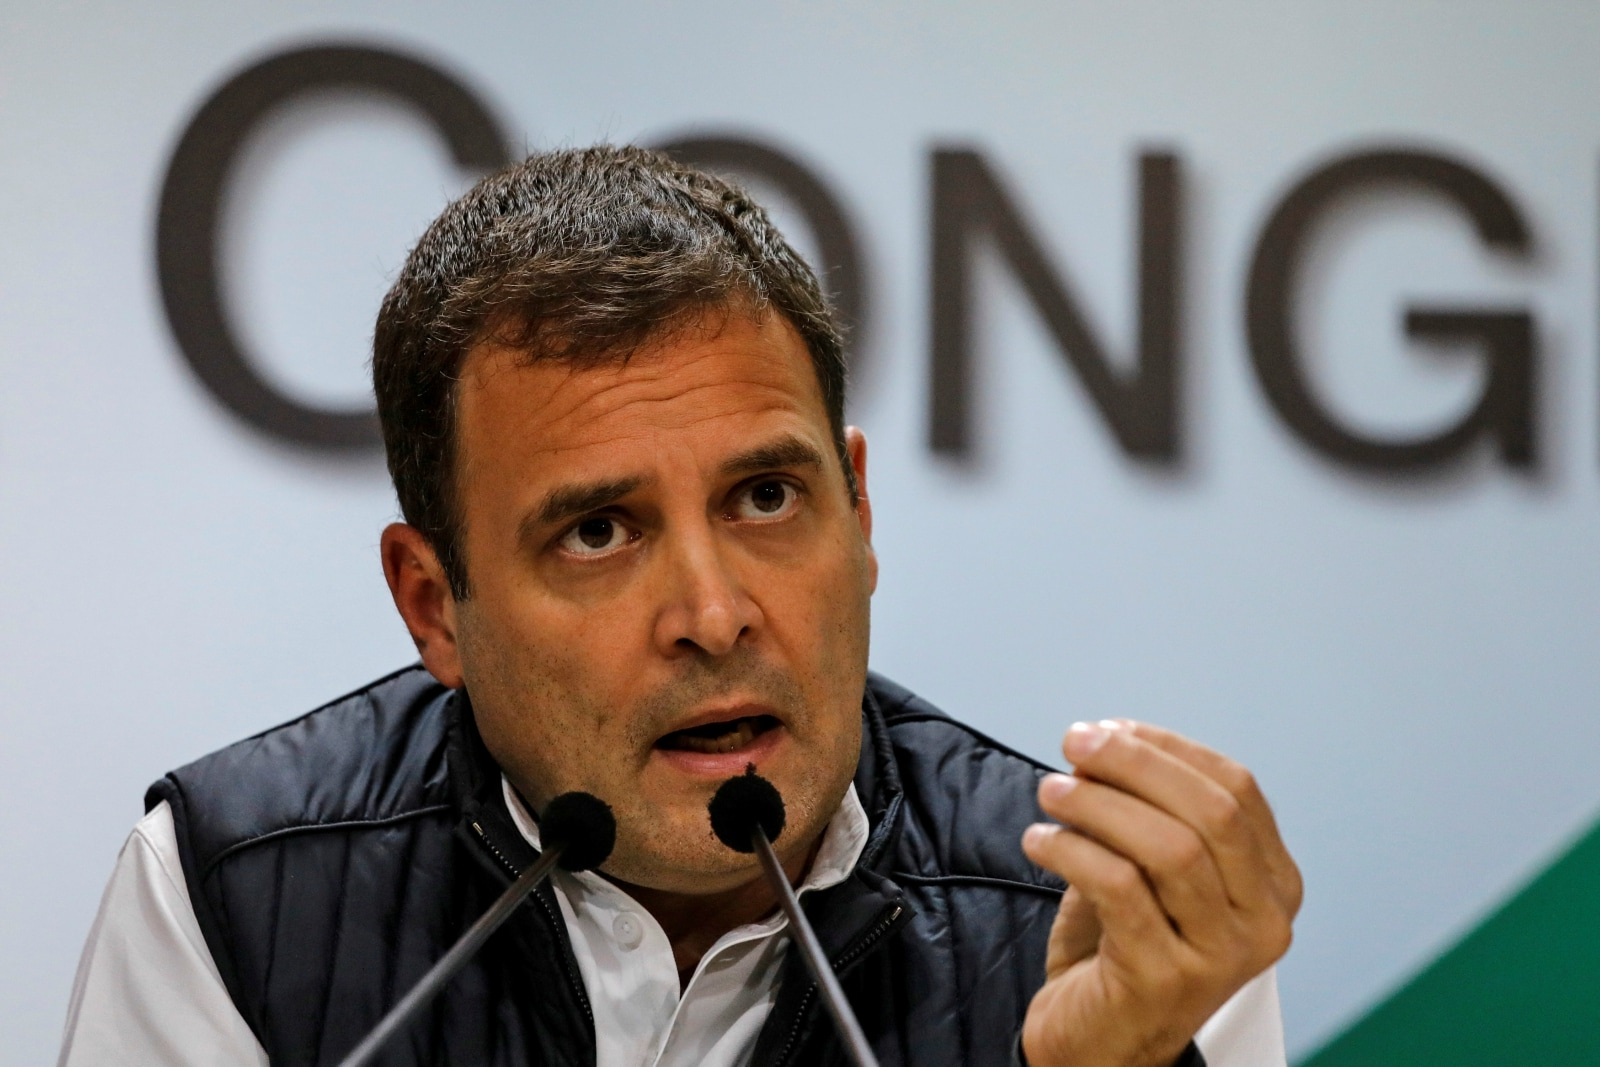 """Congress leader Rahul Gandhi termed the government decision to provide farmers Rs 17 a day was an insult to the latter. """"You can waive off Rs 3.5 Lakh Crore loan of 15 people but give only Rs 17 per day to farmers! What else is this, if not an insult?"""" he said."""